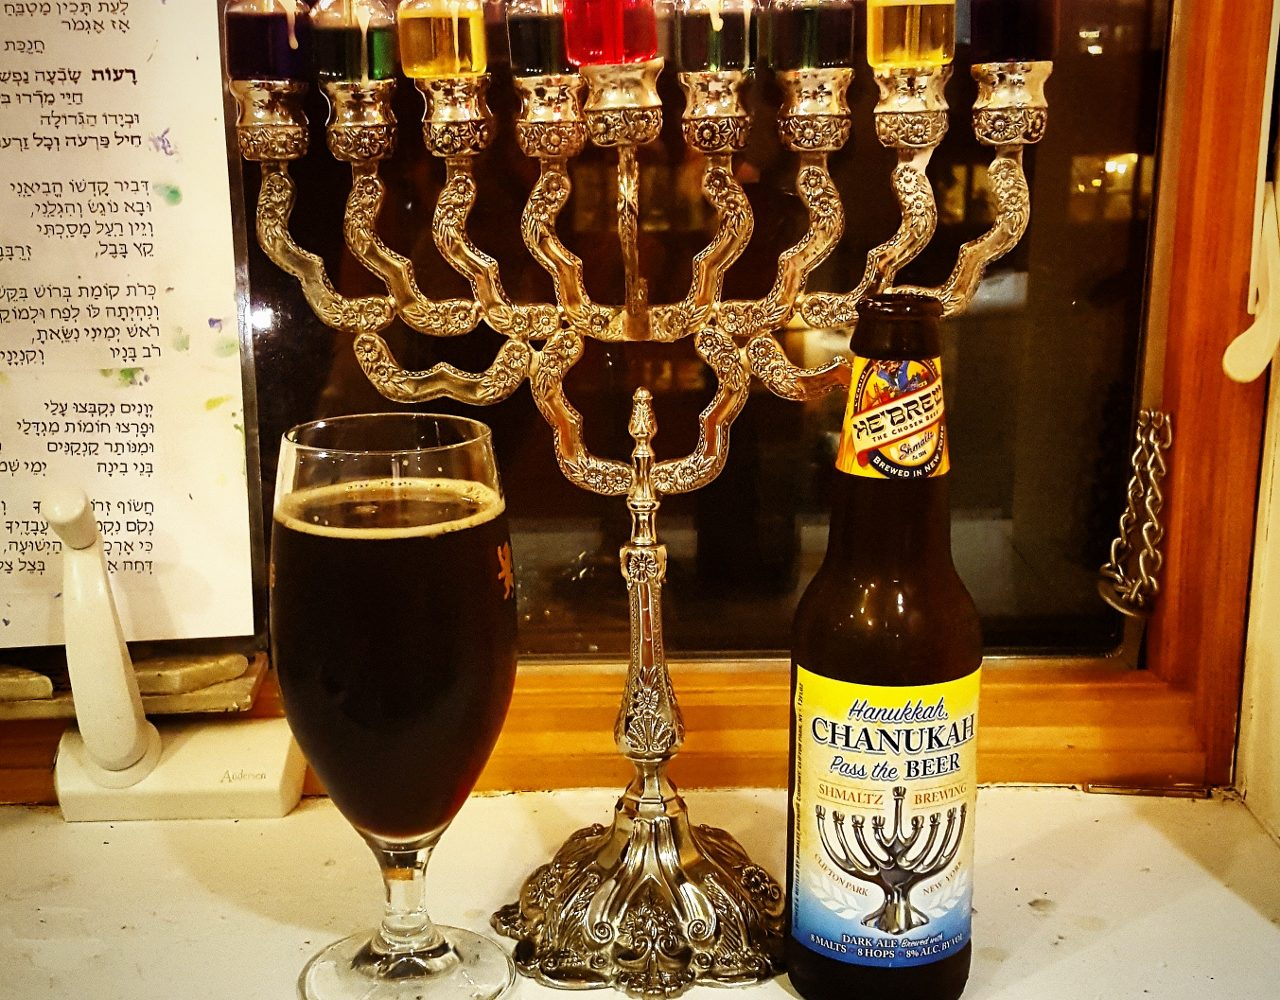 Chanukah, Hanukkah Pass The Beer